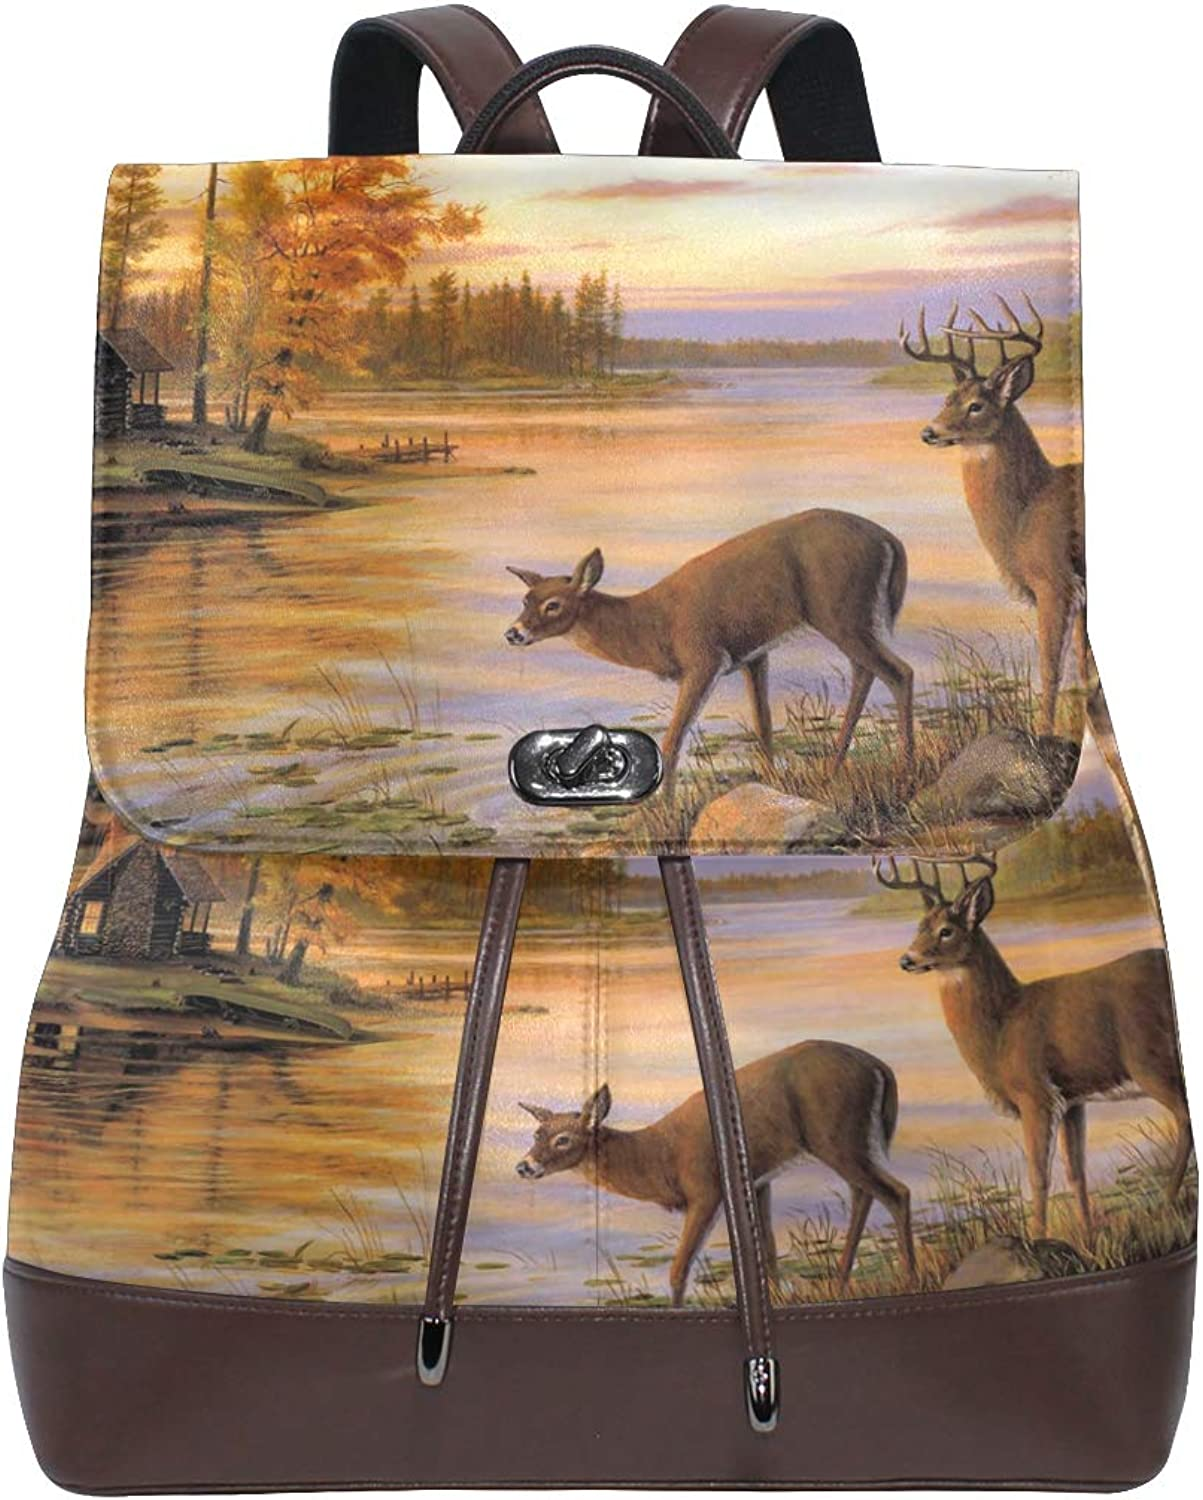 FAJRO Lake House Deer Drinking Water Painting Travel Backpack Leather Handbag School Pack